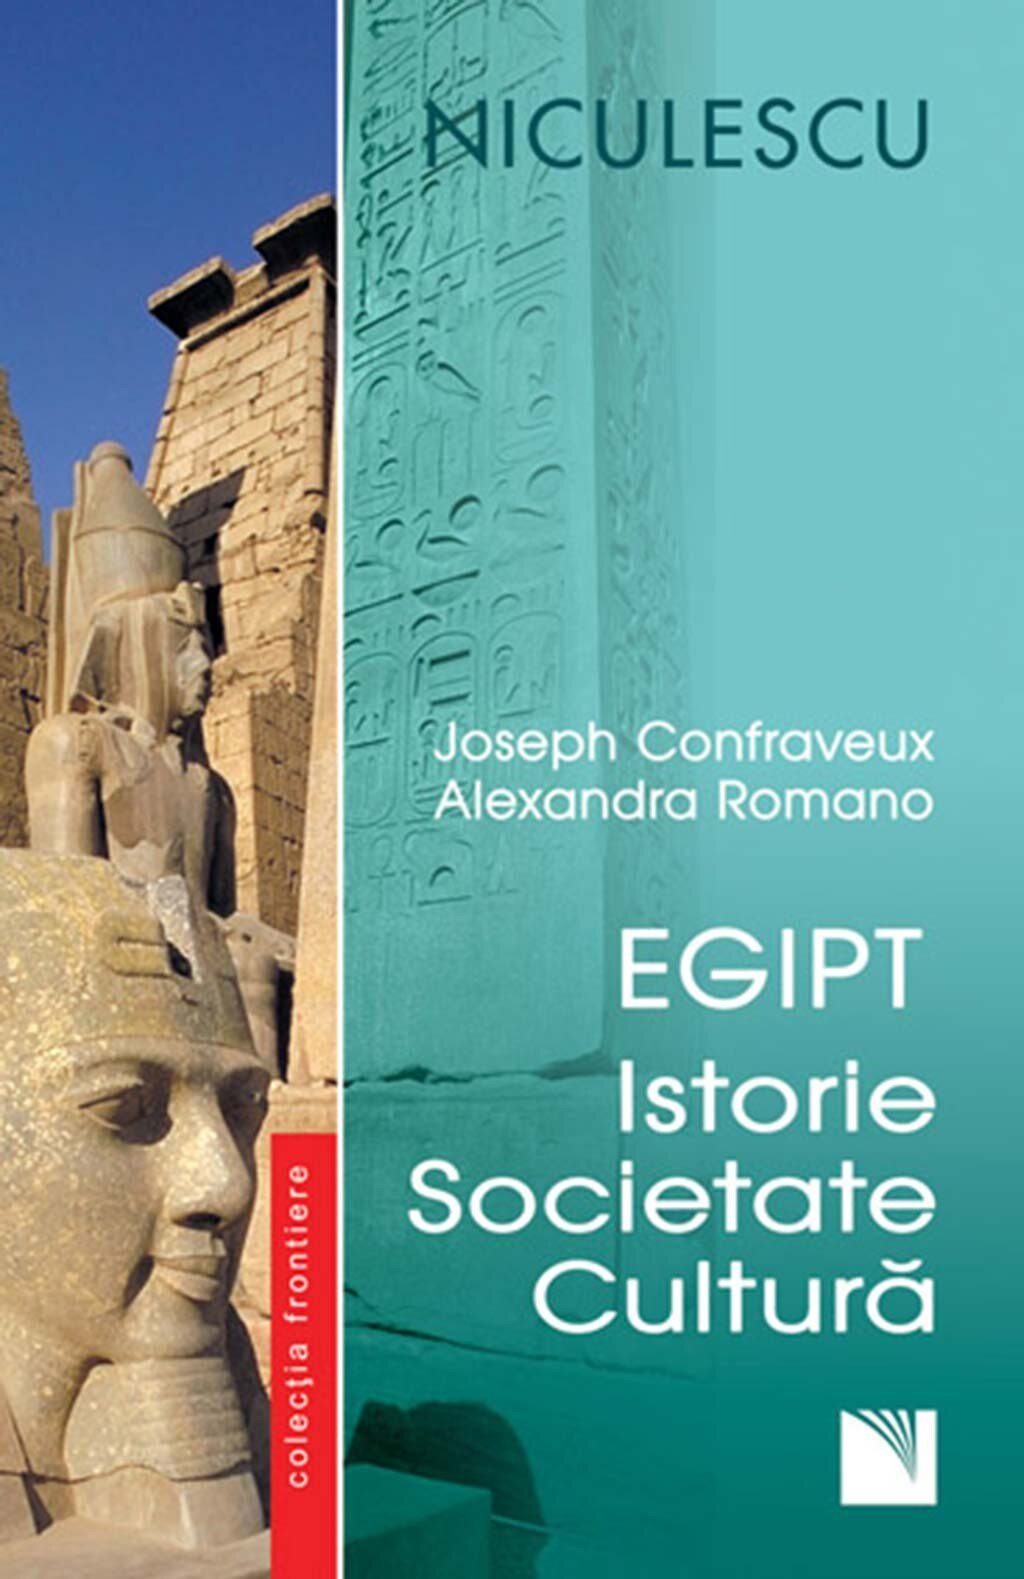 Egipt. Istorie, societate, cultura (eBook)